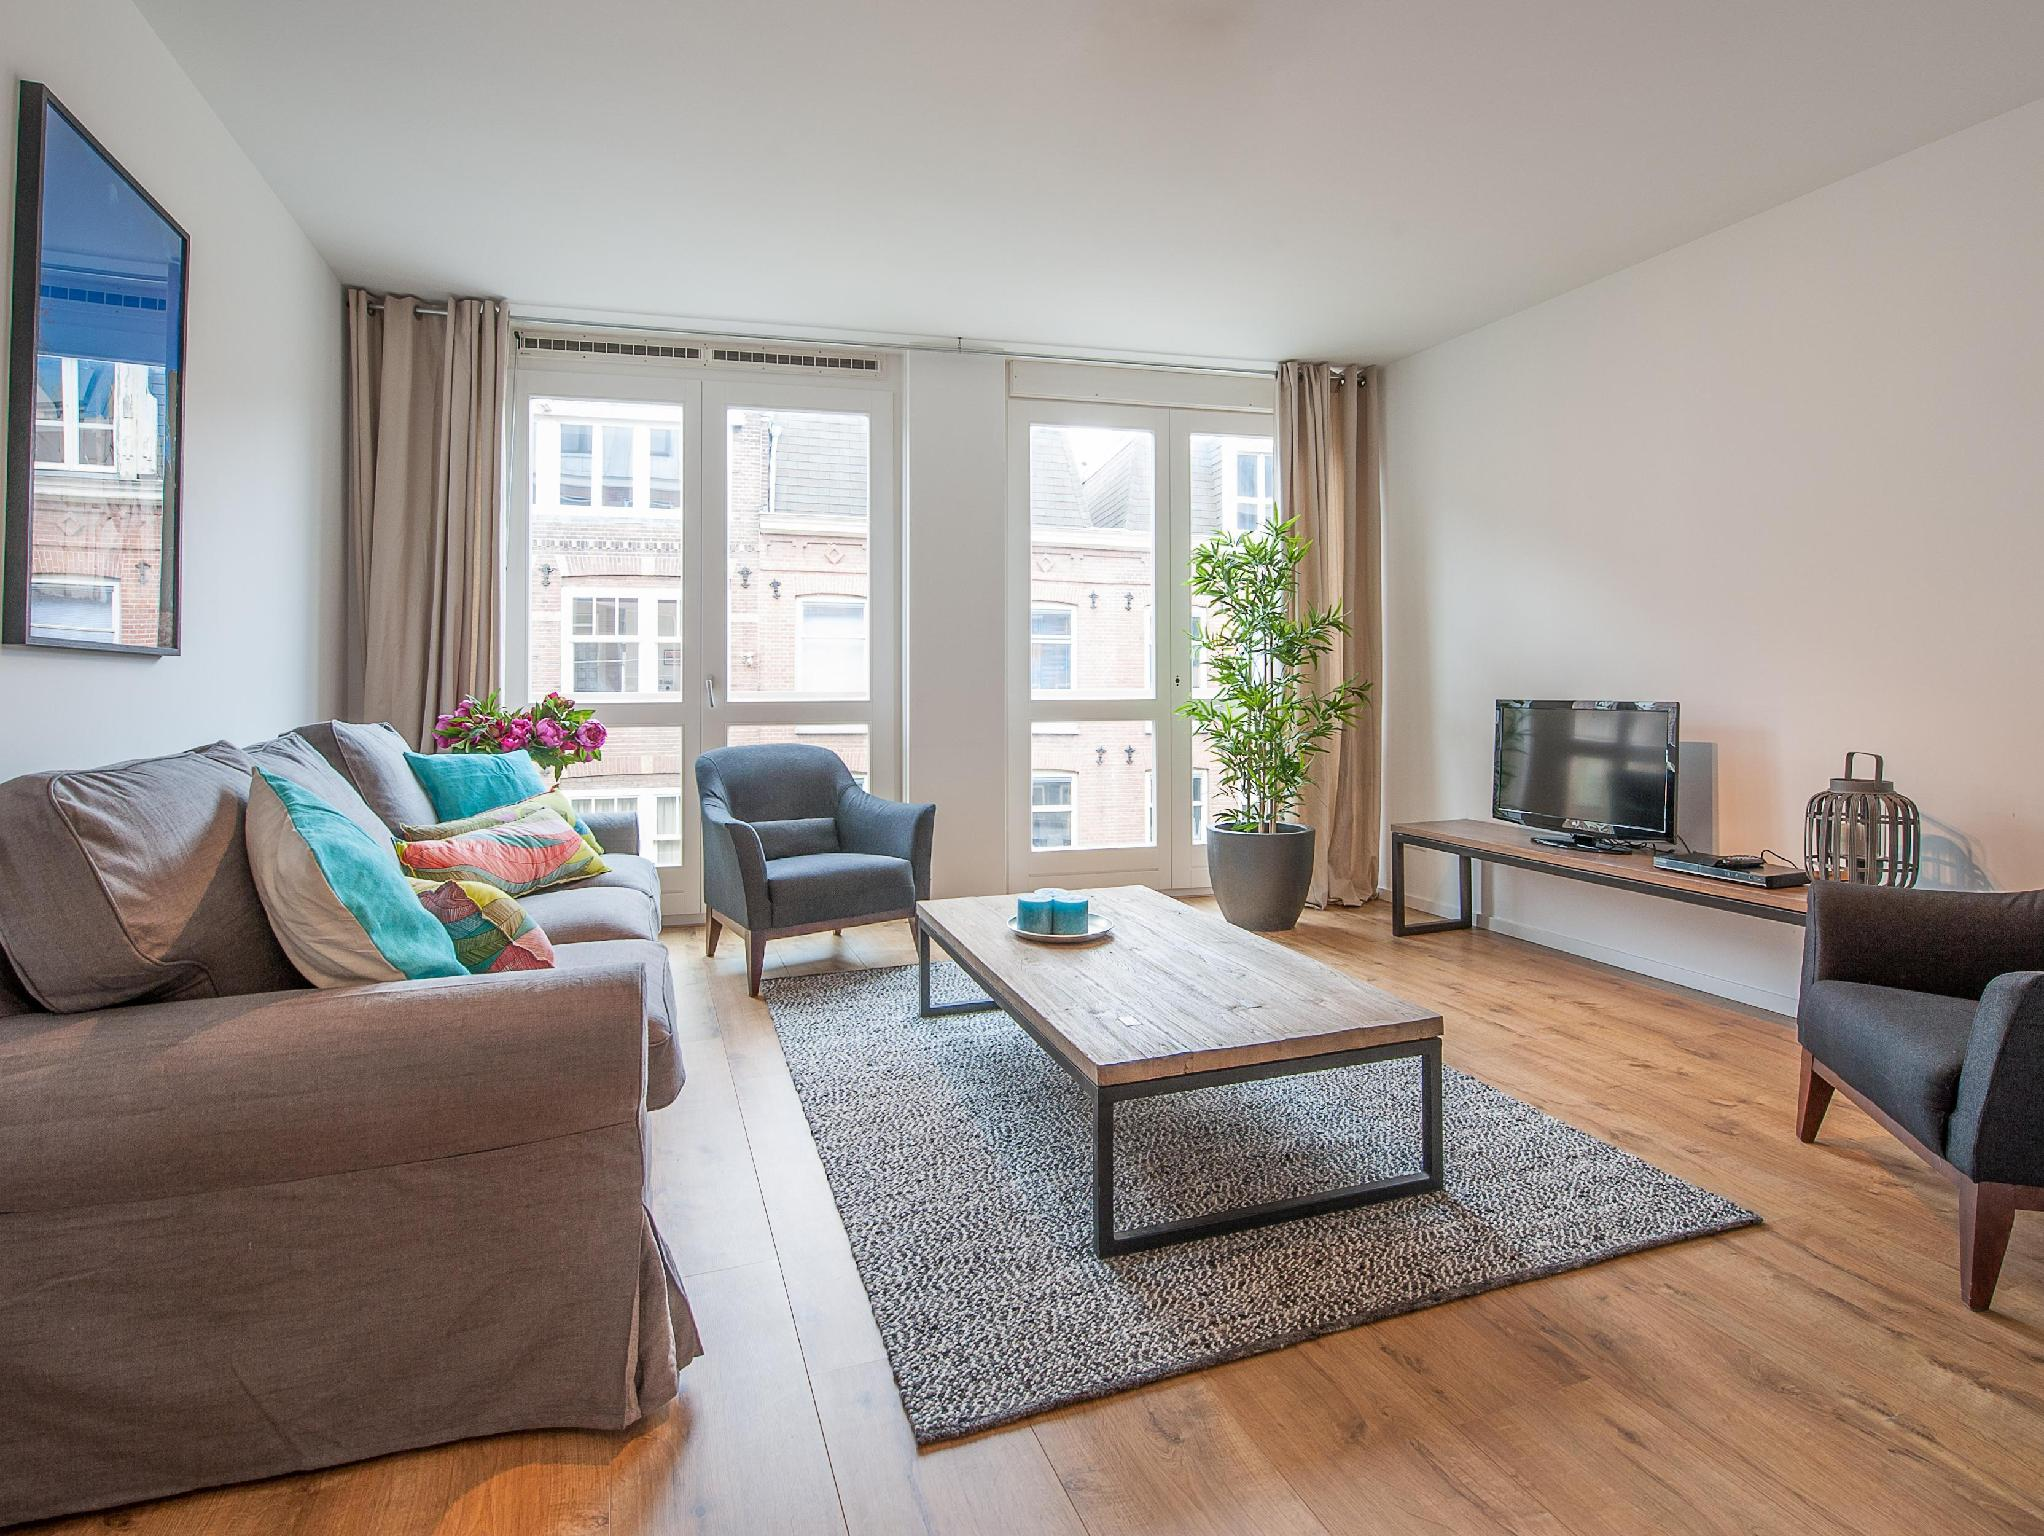 Best Price on Sarphatipark Apartments in Amsterdam + Reviews!